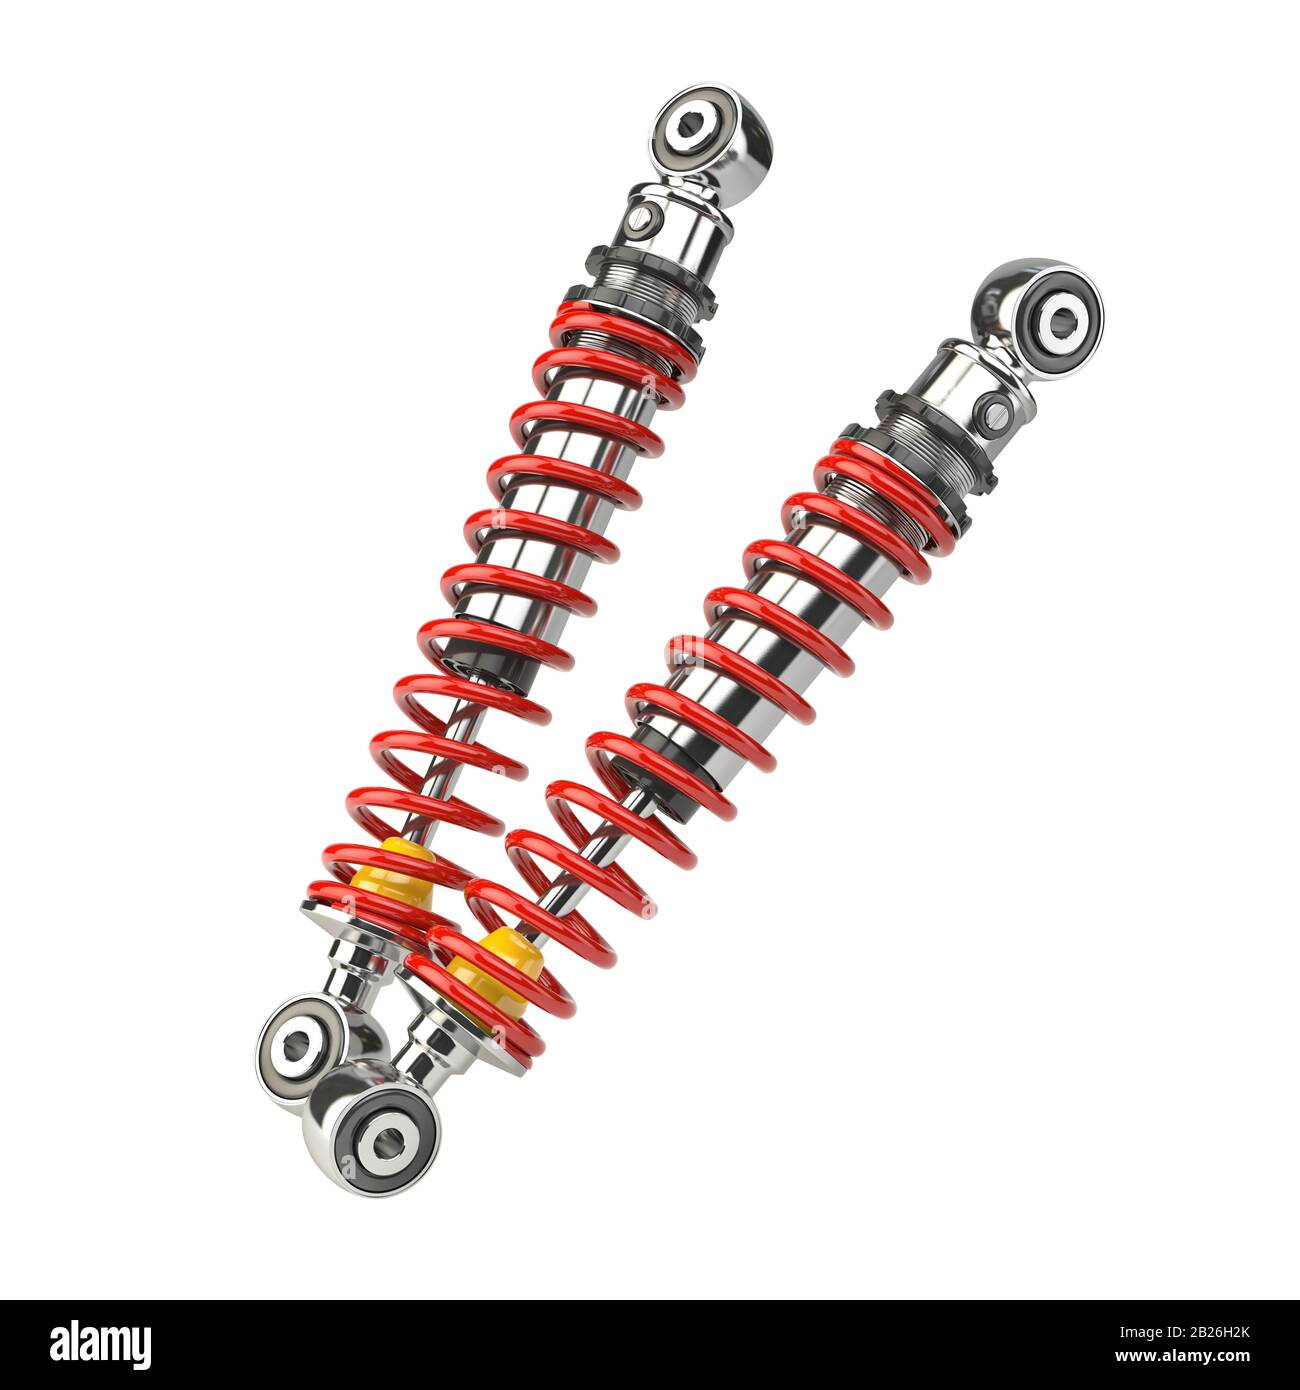 Shock absorber car isolated on white background. Auto parts and spare. 3d illustration Stock Photo